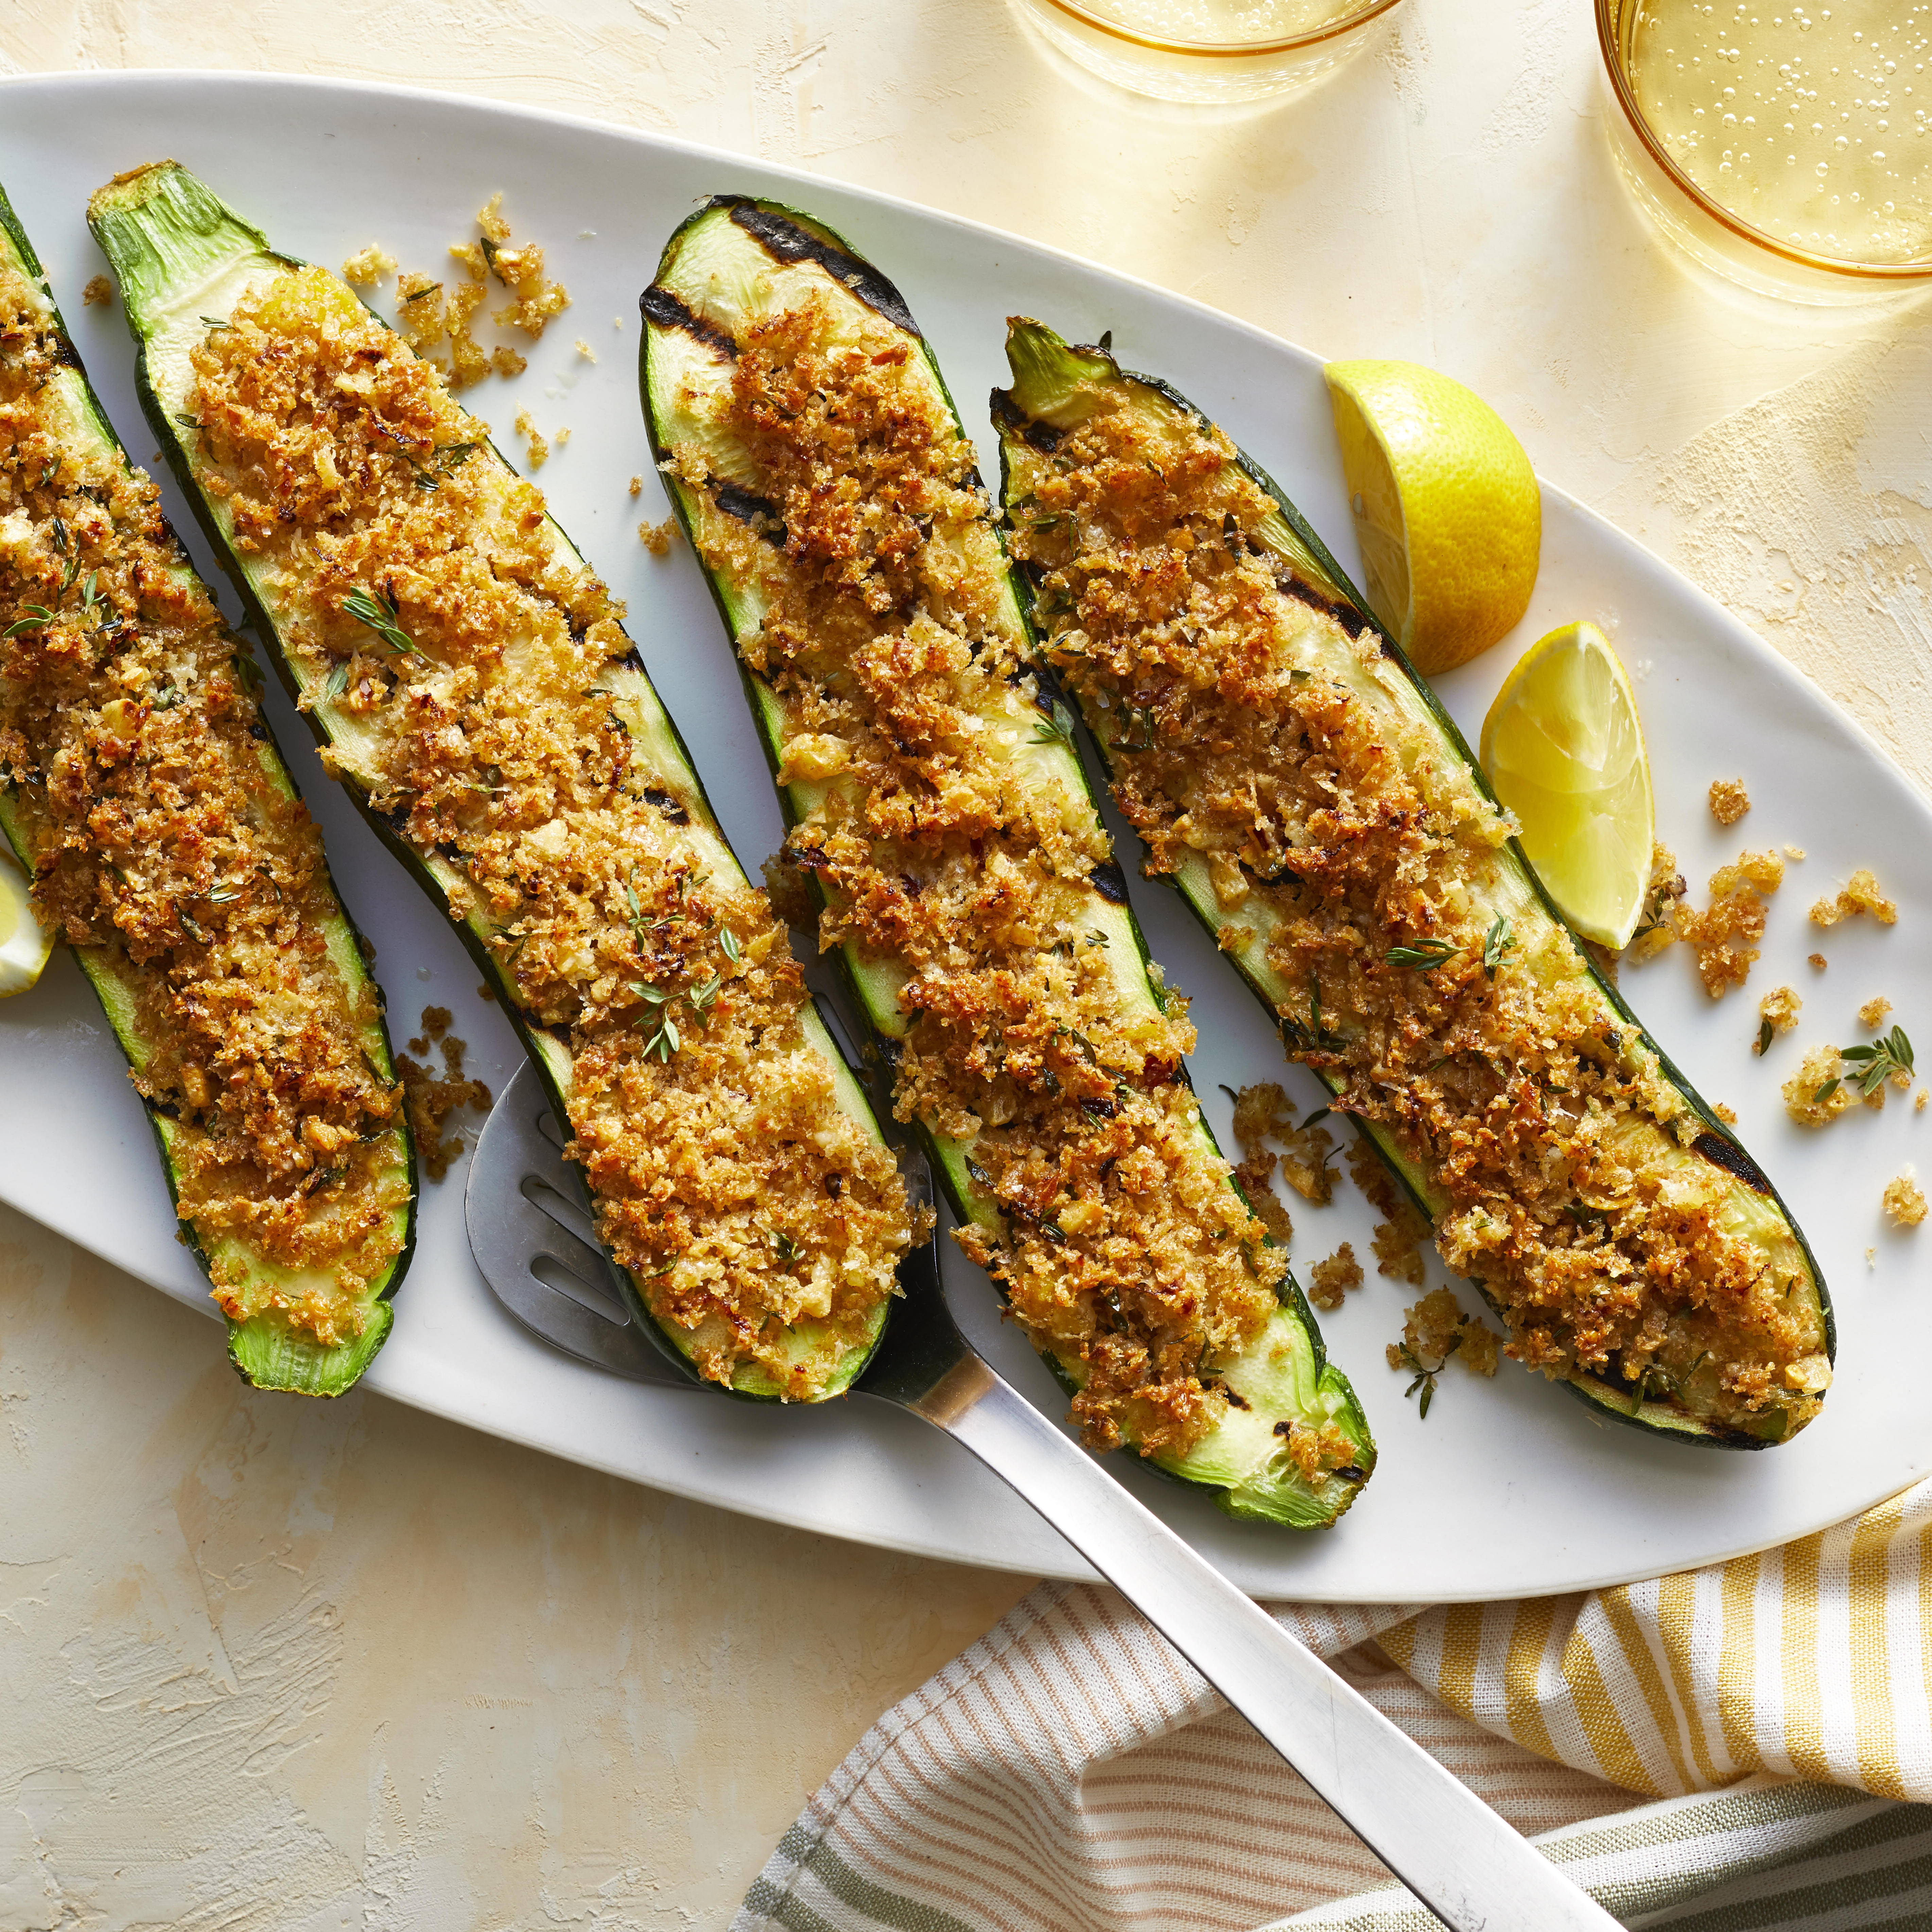 Grilled Zucchini with Parmesan Trusted Brands